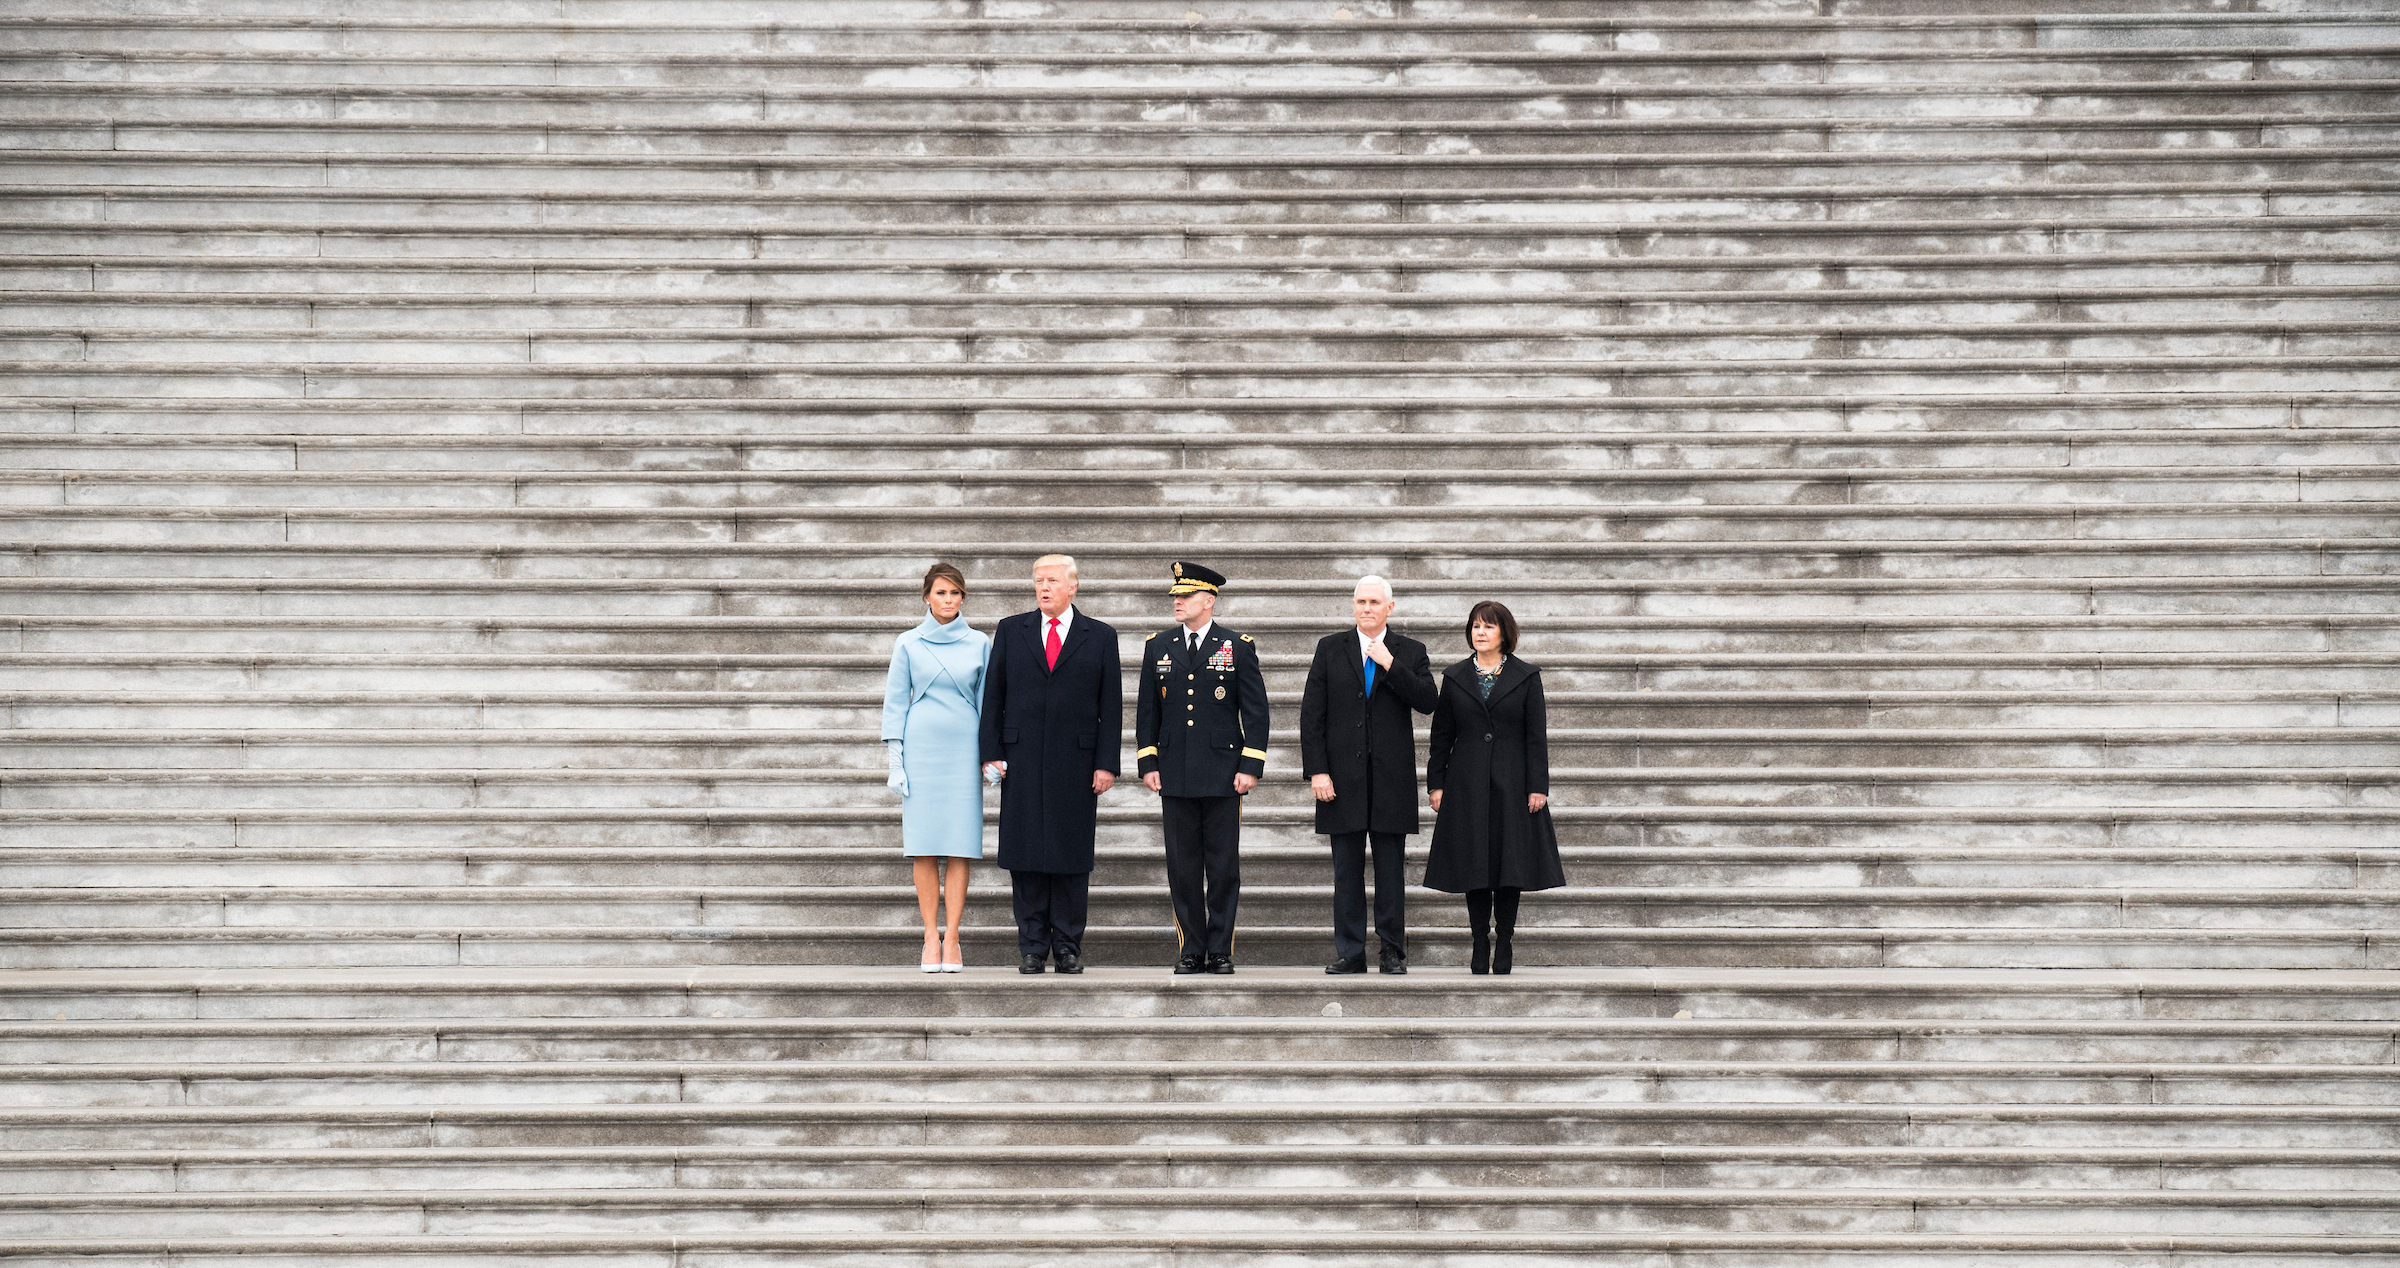 UNITED STATES - JANUARY 20: From left, First Lady Melania Trump, President Donald Trump, Major General Bradley Becker, Vice President Mike Pence, and his wife Karen Pence prepare to review the troops following the swearing in of Donald Trump as the 45th President of the United States on Friday, Jan. 20, 2017.(Photo By Bill Clark/CQ Roll Call)